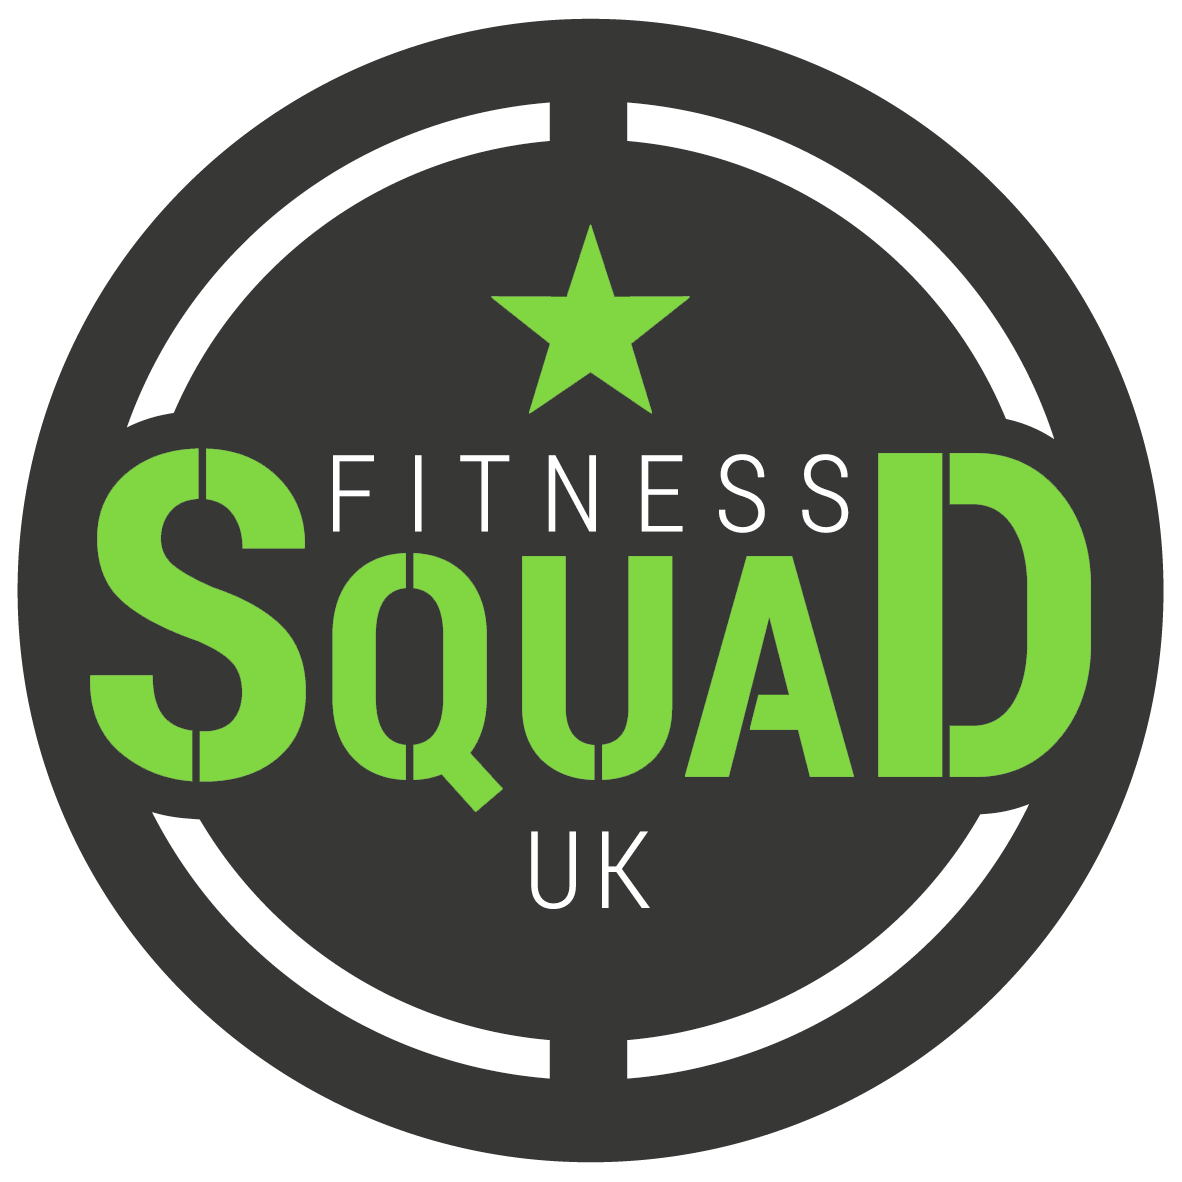 Fitness Squad UK